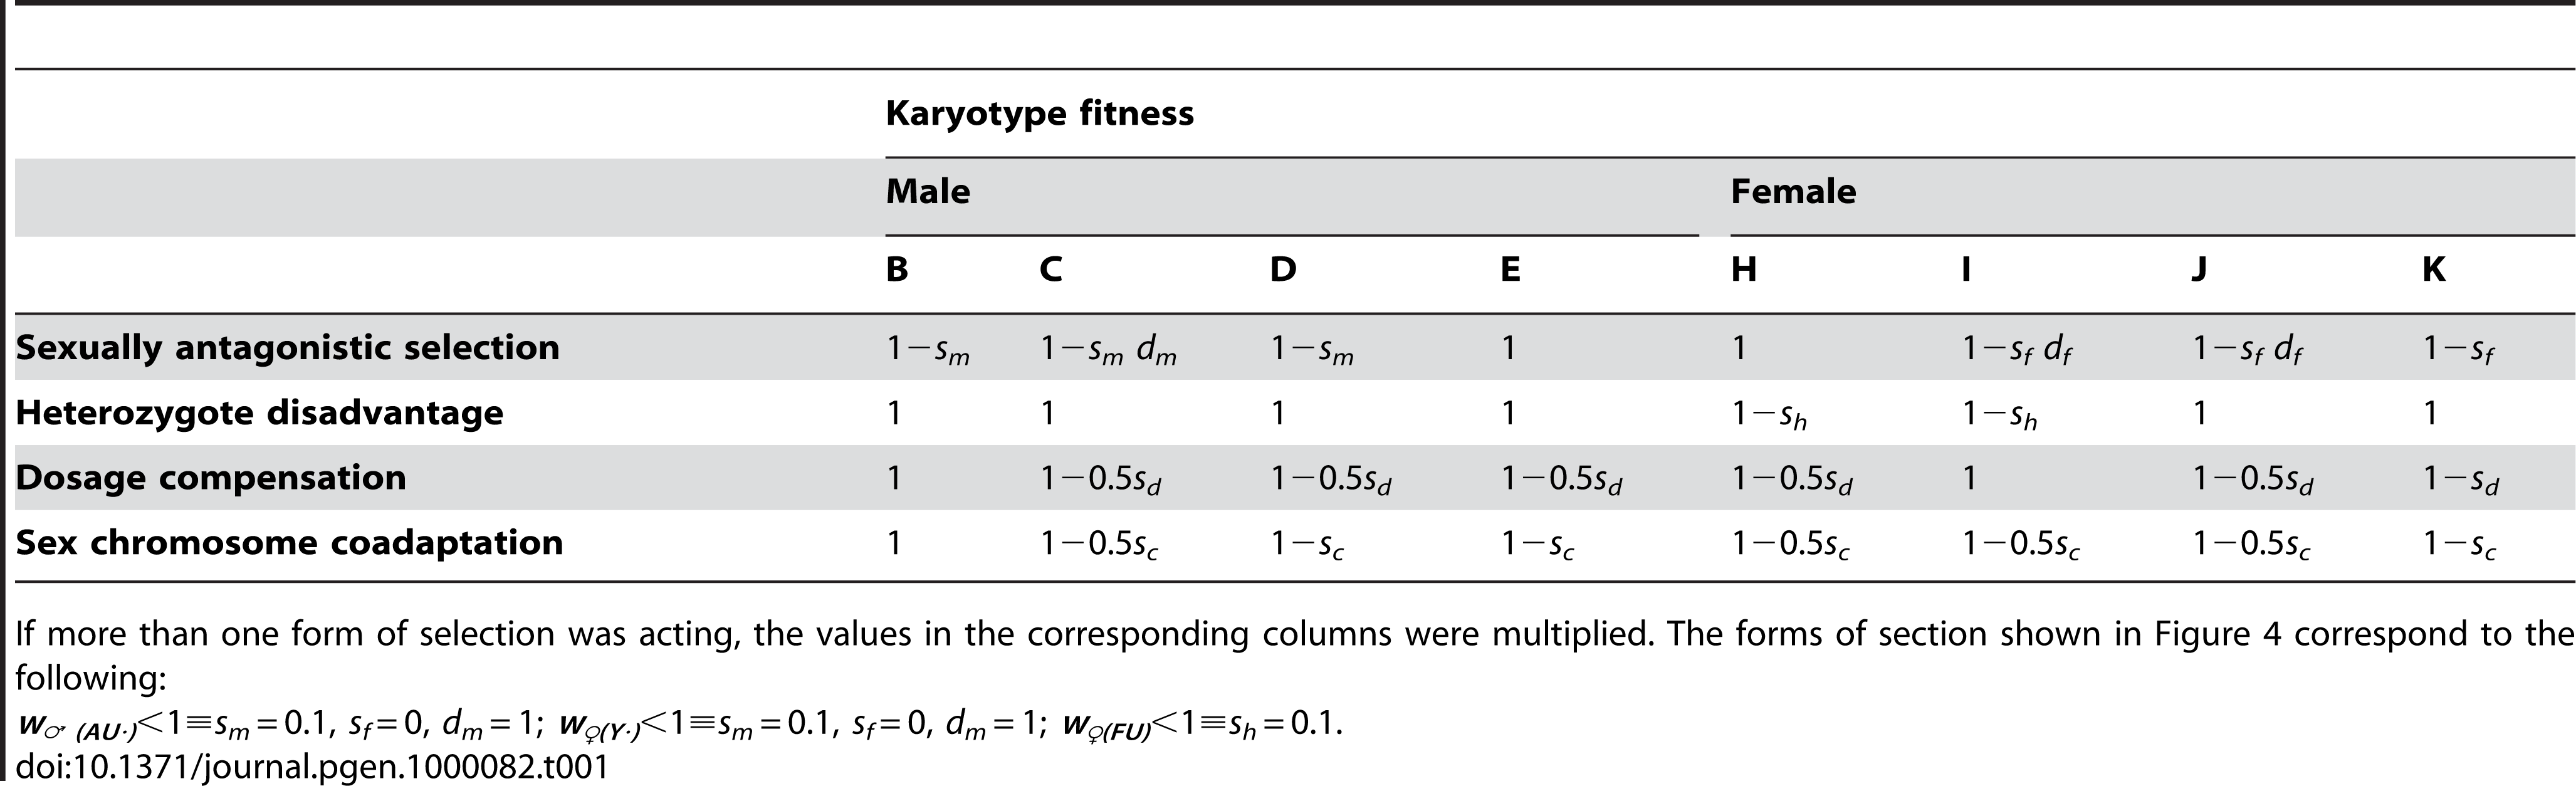 The finesses of the karyotypes under different forms of selection.